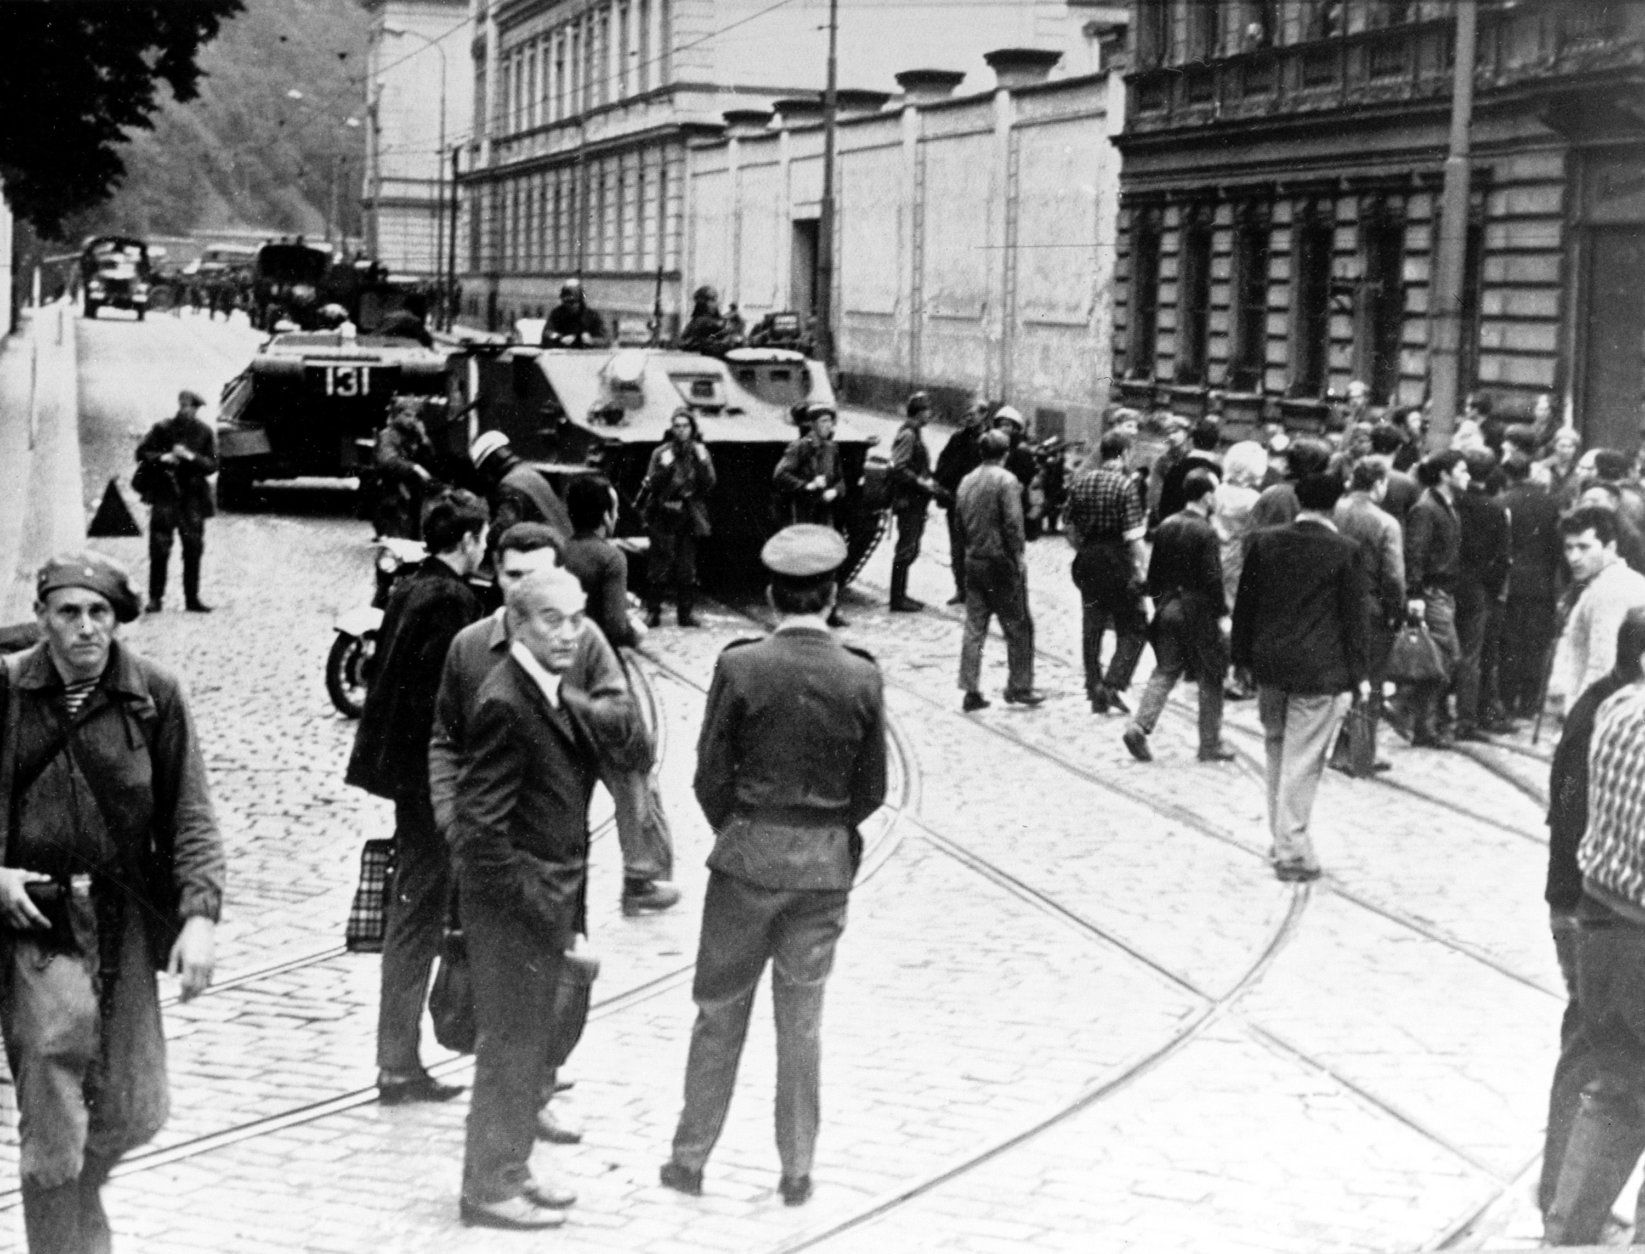 Tanks and troops from the Soviet Union stand in the middle of a street in Prague after the Soviet invasion of Czechoslovakia on Aug. 21, 1968, putting an end to Prague Spring reform.  (AP Photo)